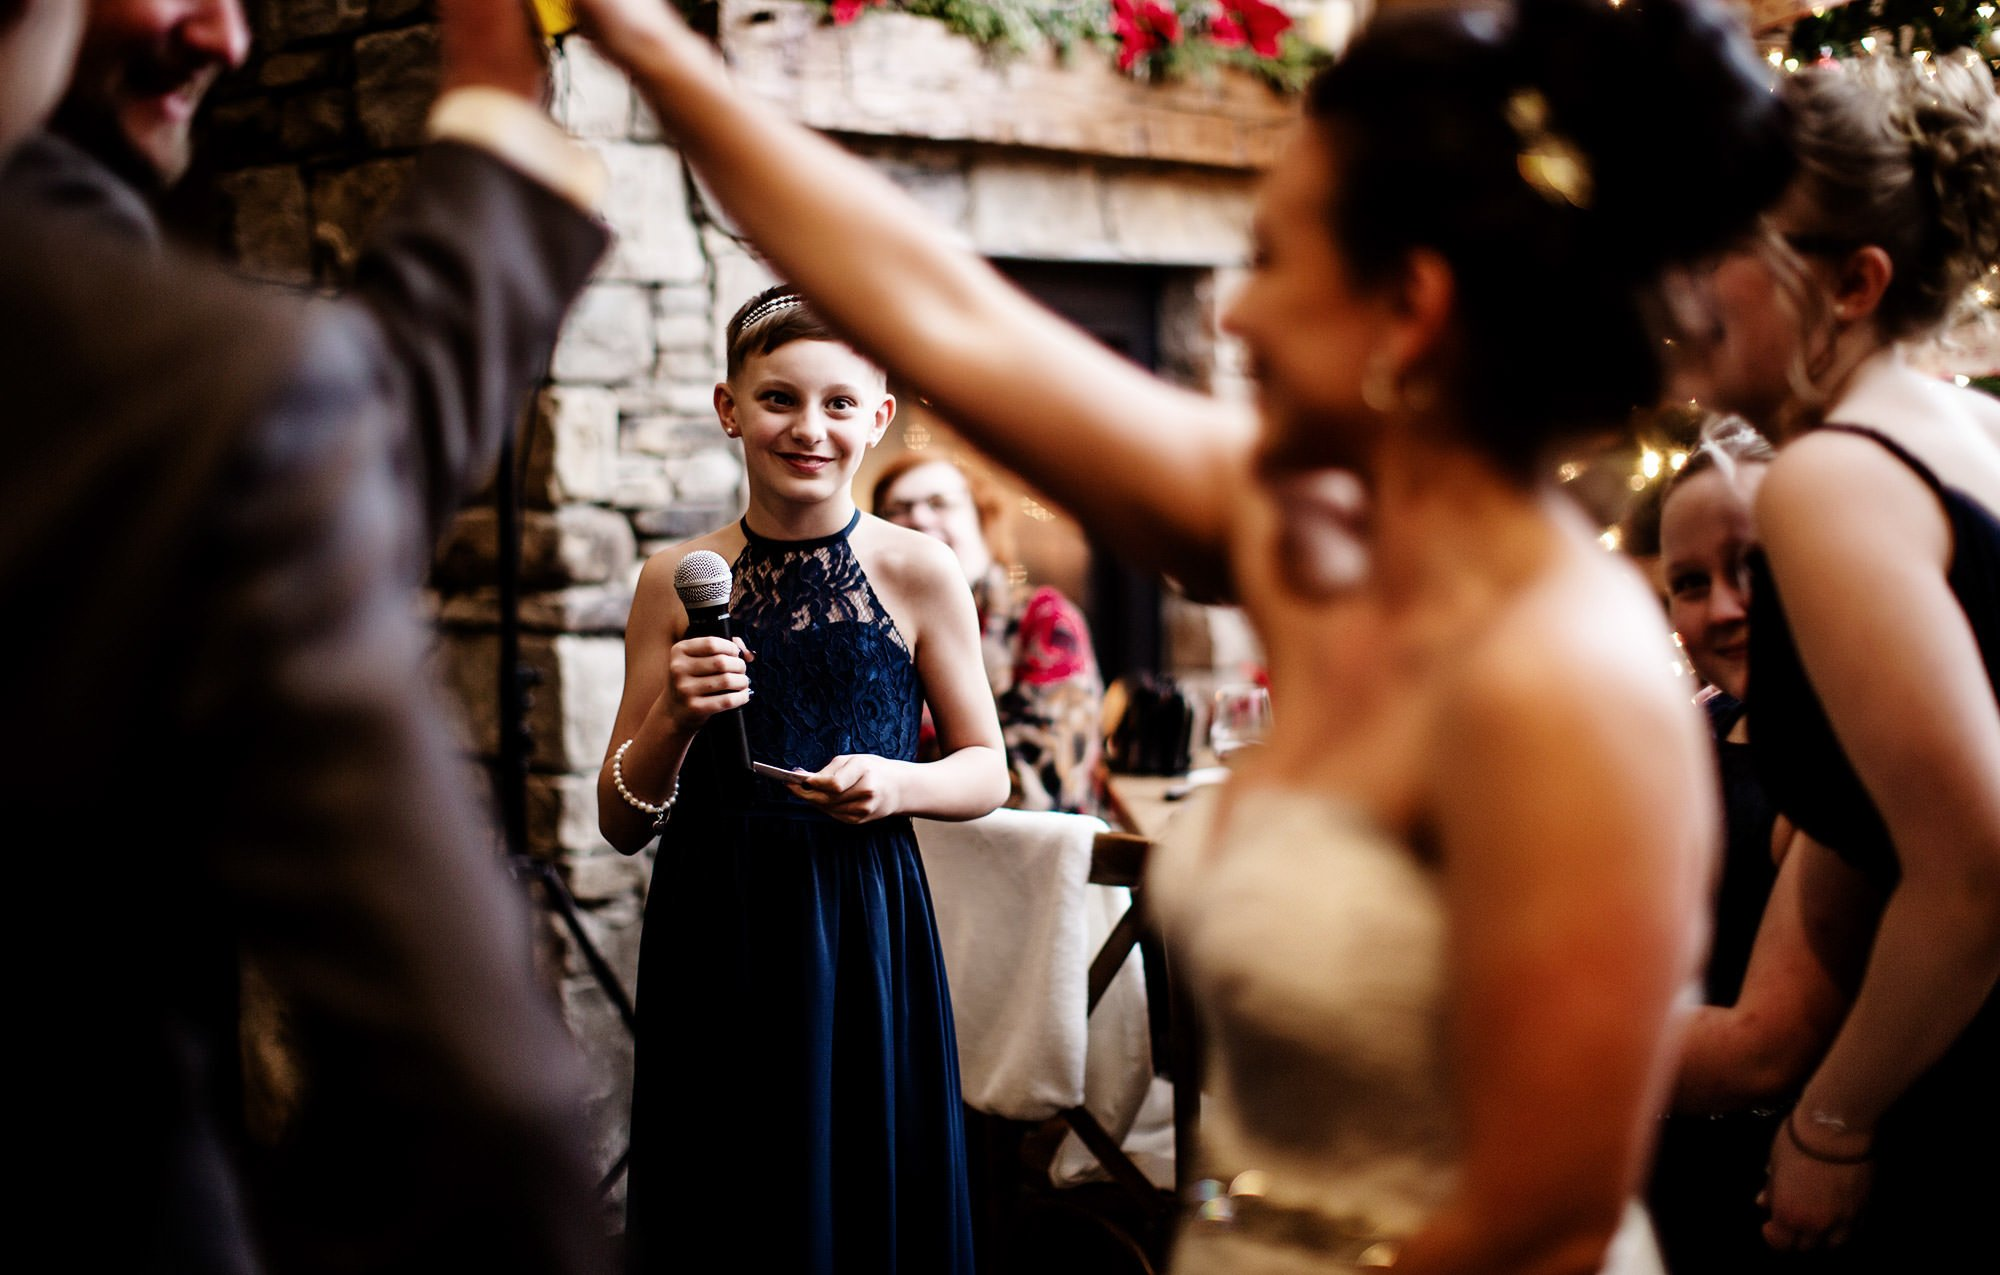 A bridesmaid gives a toast during the Silver Oak Mystic wedding reception.